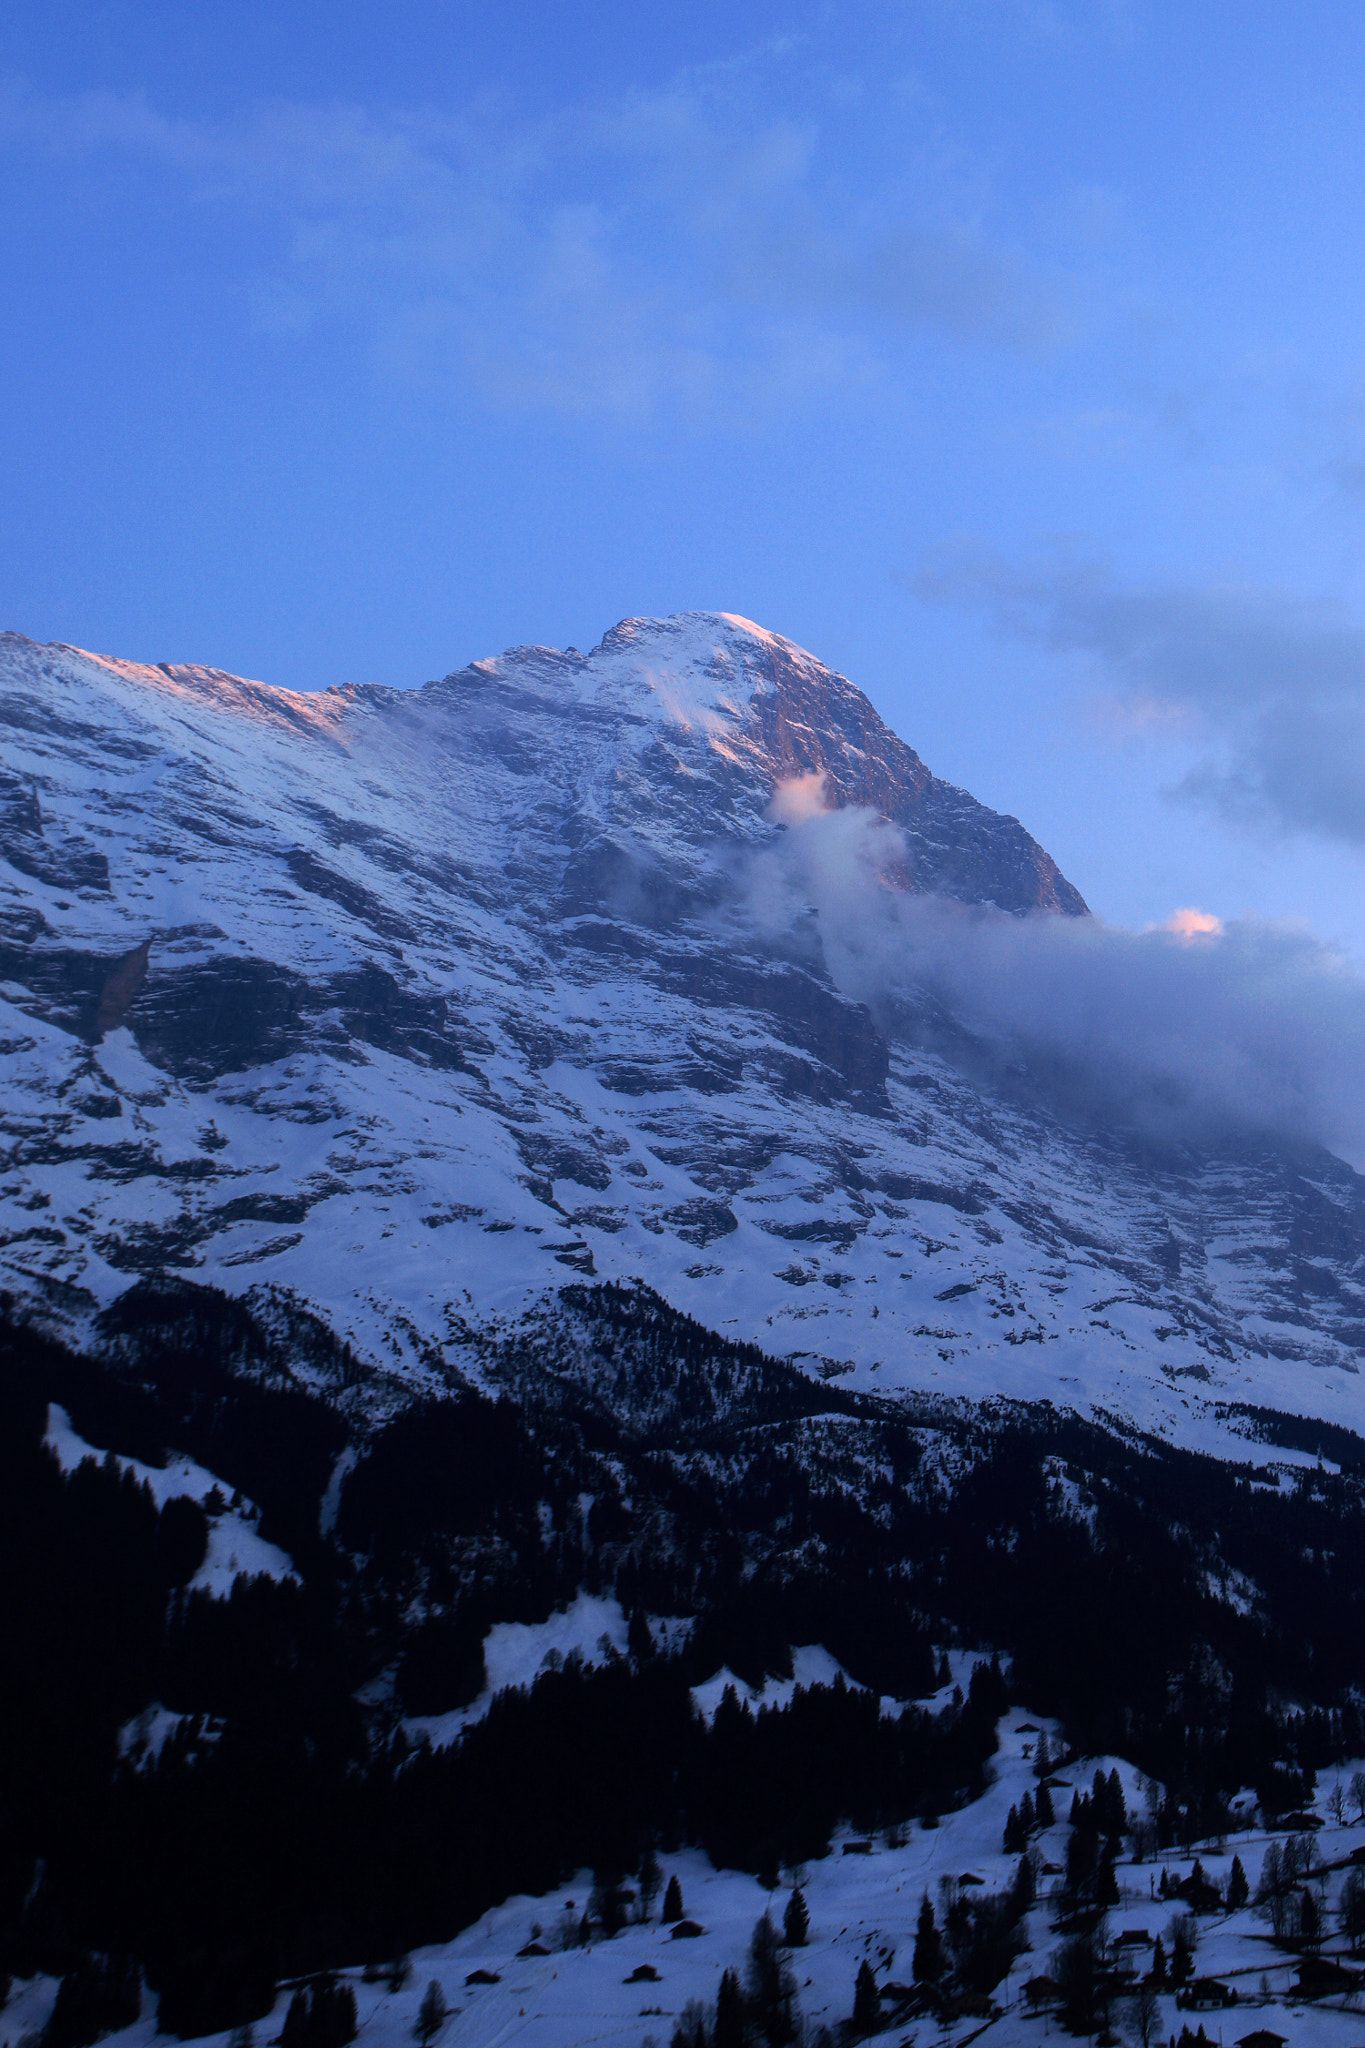 Winter snow view over the North face of the Eiger mountain Grin - Winter snow view over the North face of the Eiger mountain Grindelwald Ski resort; ... & Winter snow view over the North face of the Eiger mountain Grin ...